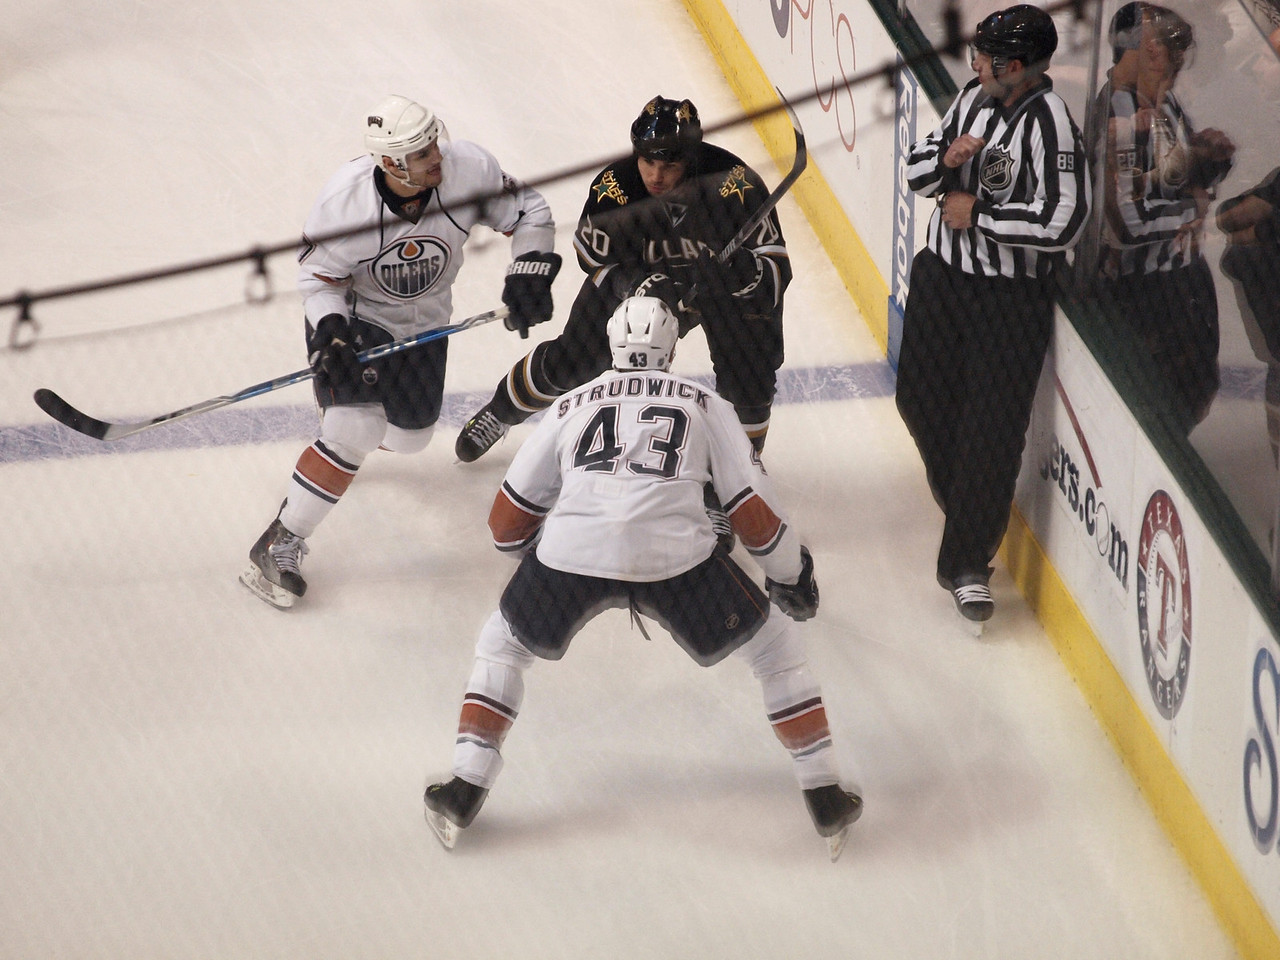 Dallas Stars vs. Edmonton Oilers, April 2, 2010.